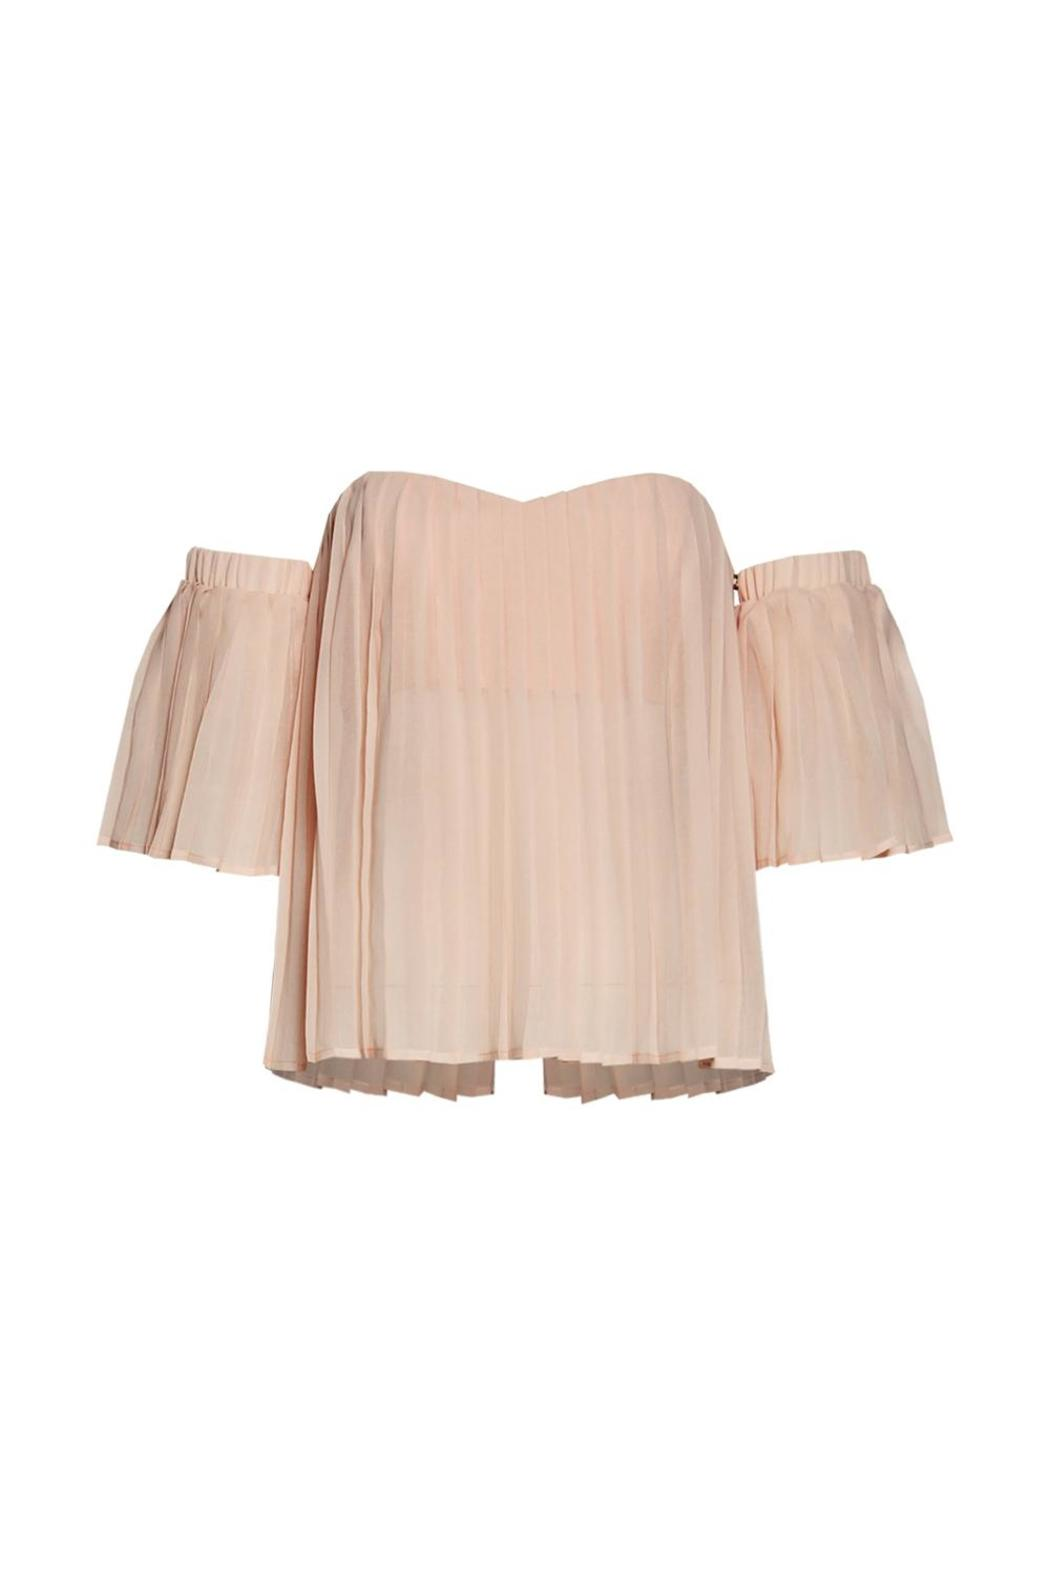 Renamed Apparel Pleated Off-Shoulder Top - Front Cropped Image